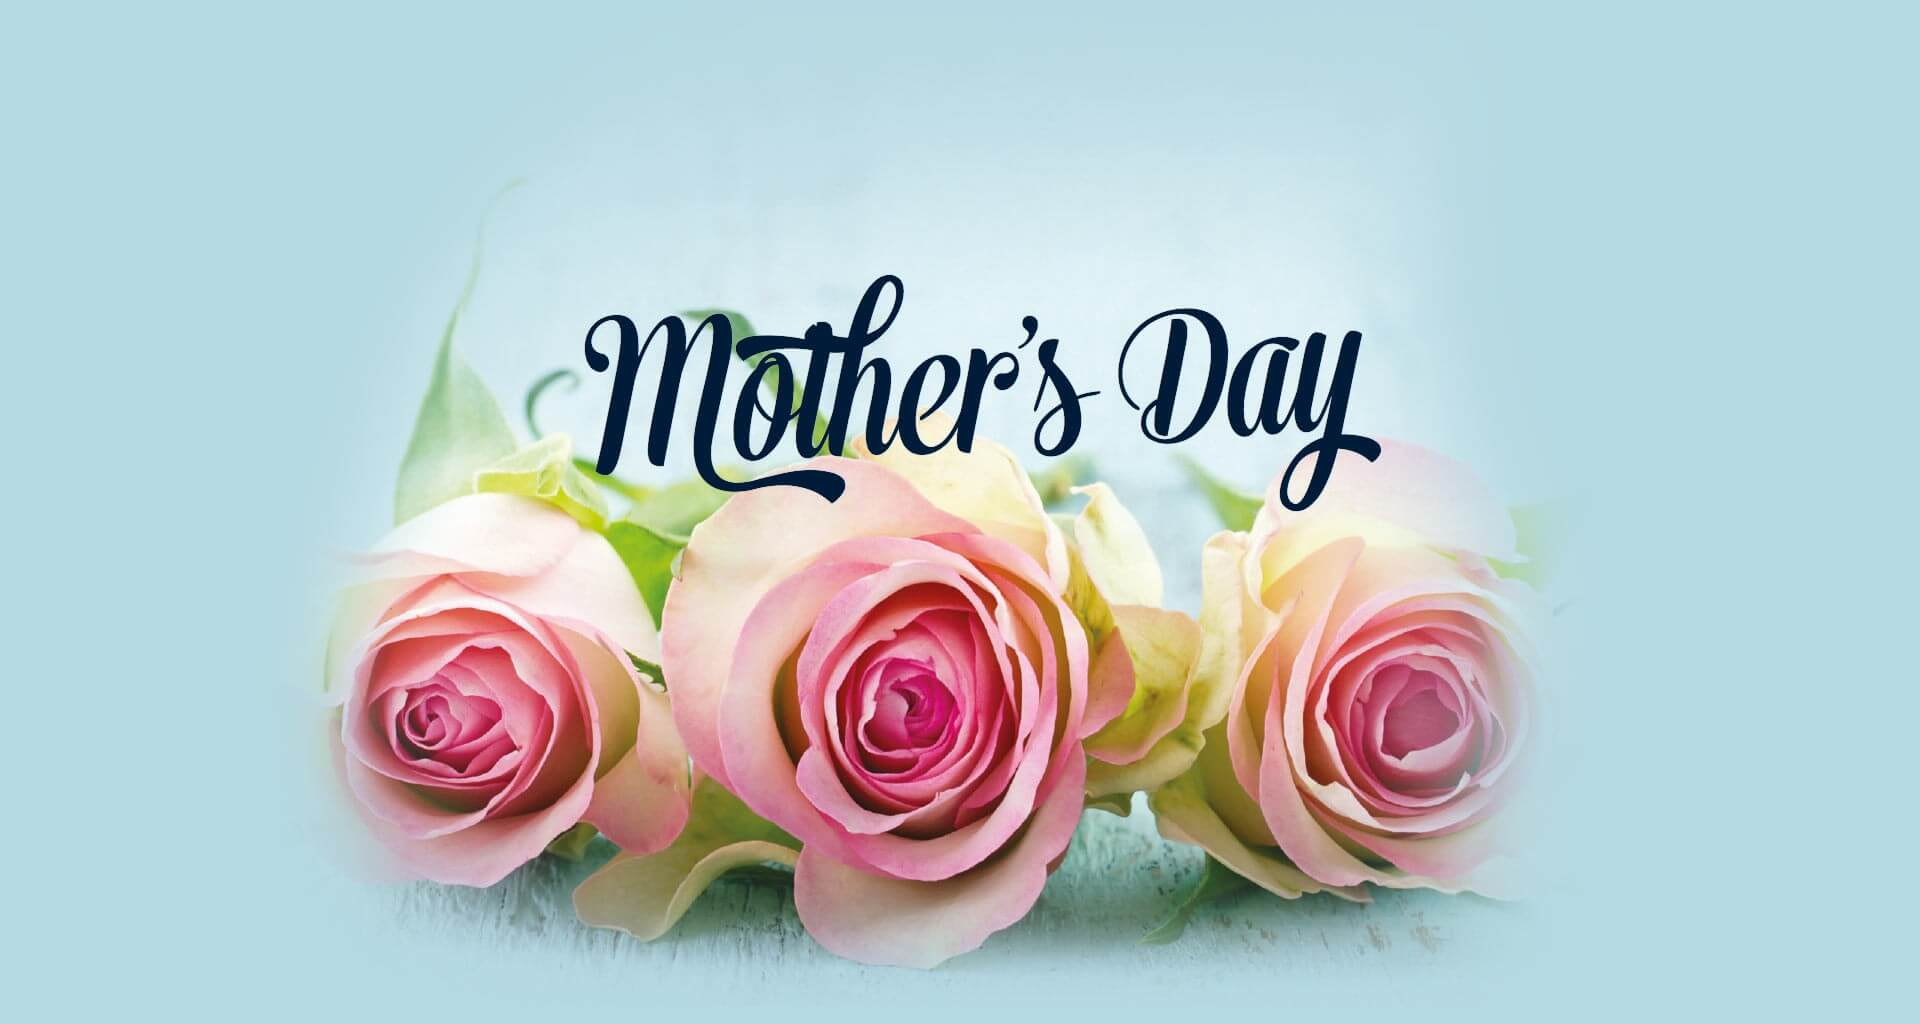 Happy Mothers Day Wishes Pink Roses Desktop Hd Wallpaper